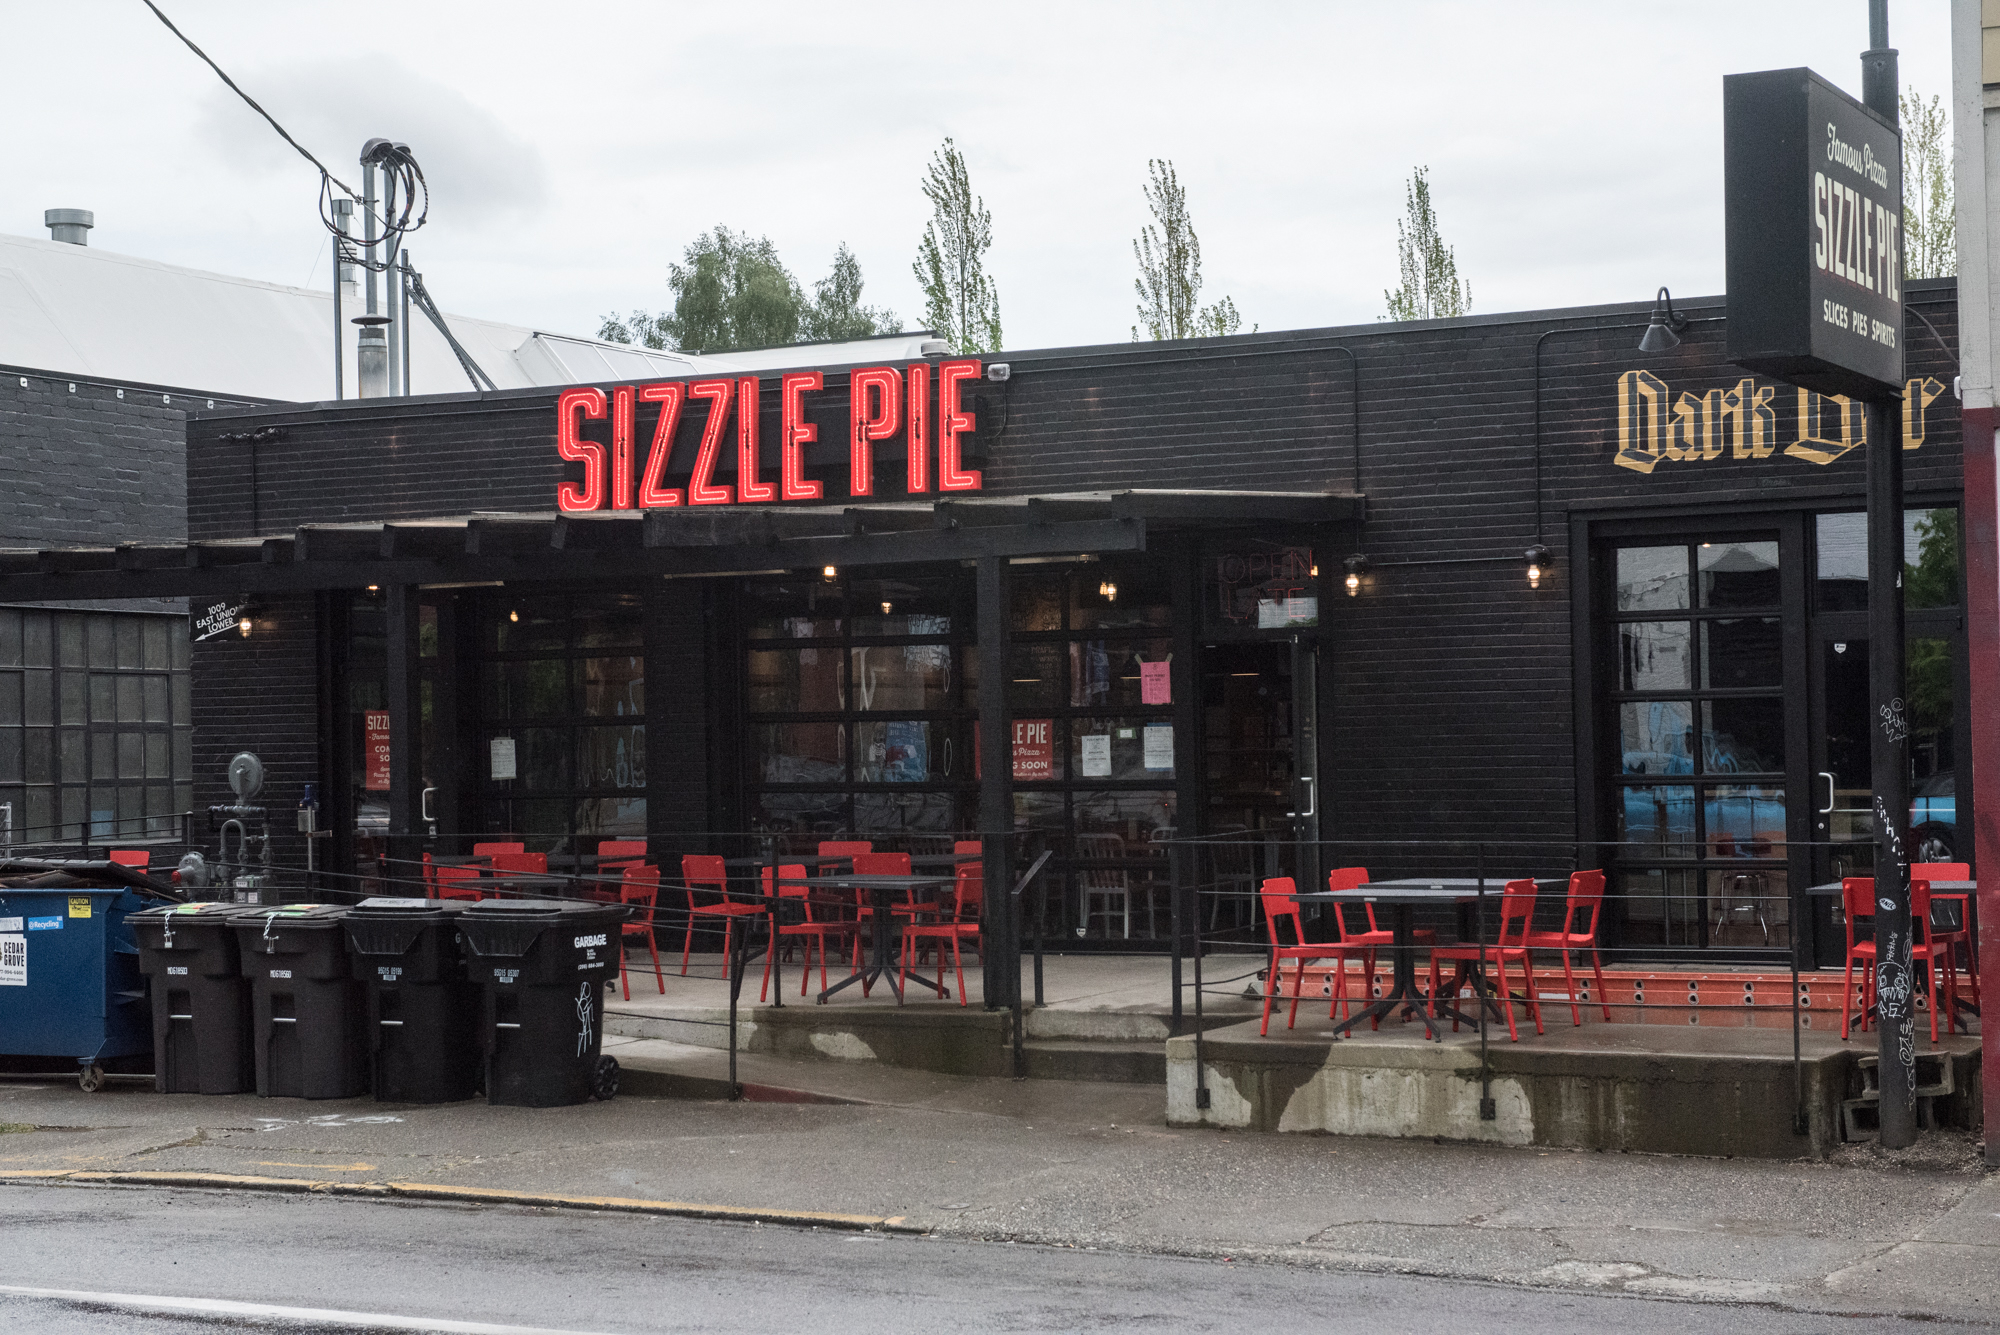 After Three Years, Sizzle Pie's Seattle Outpost Will Close August 31